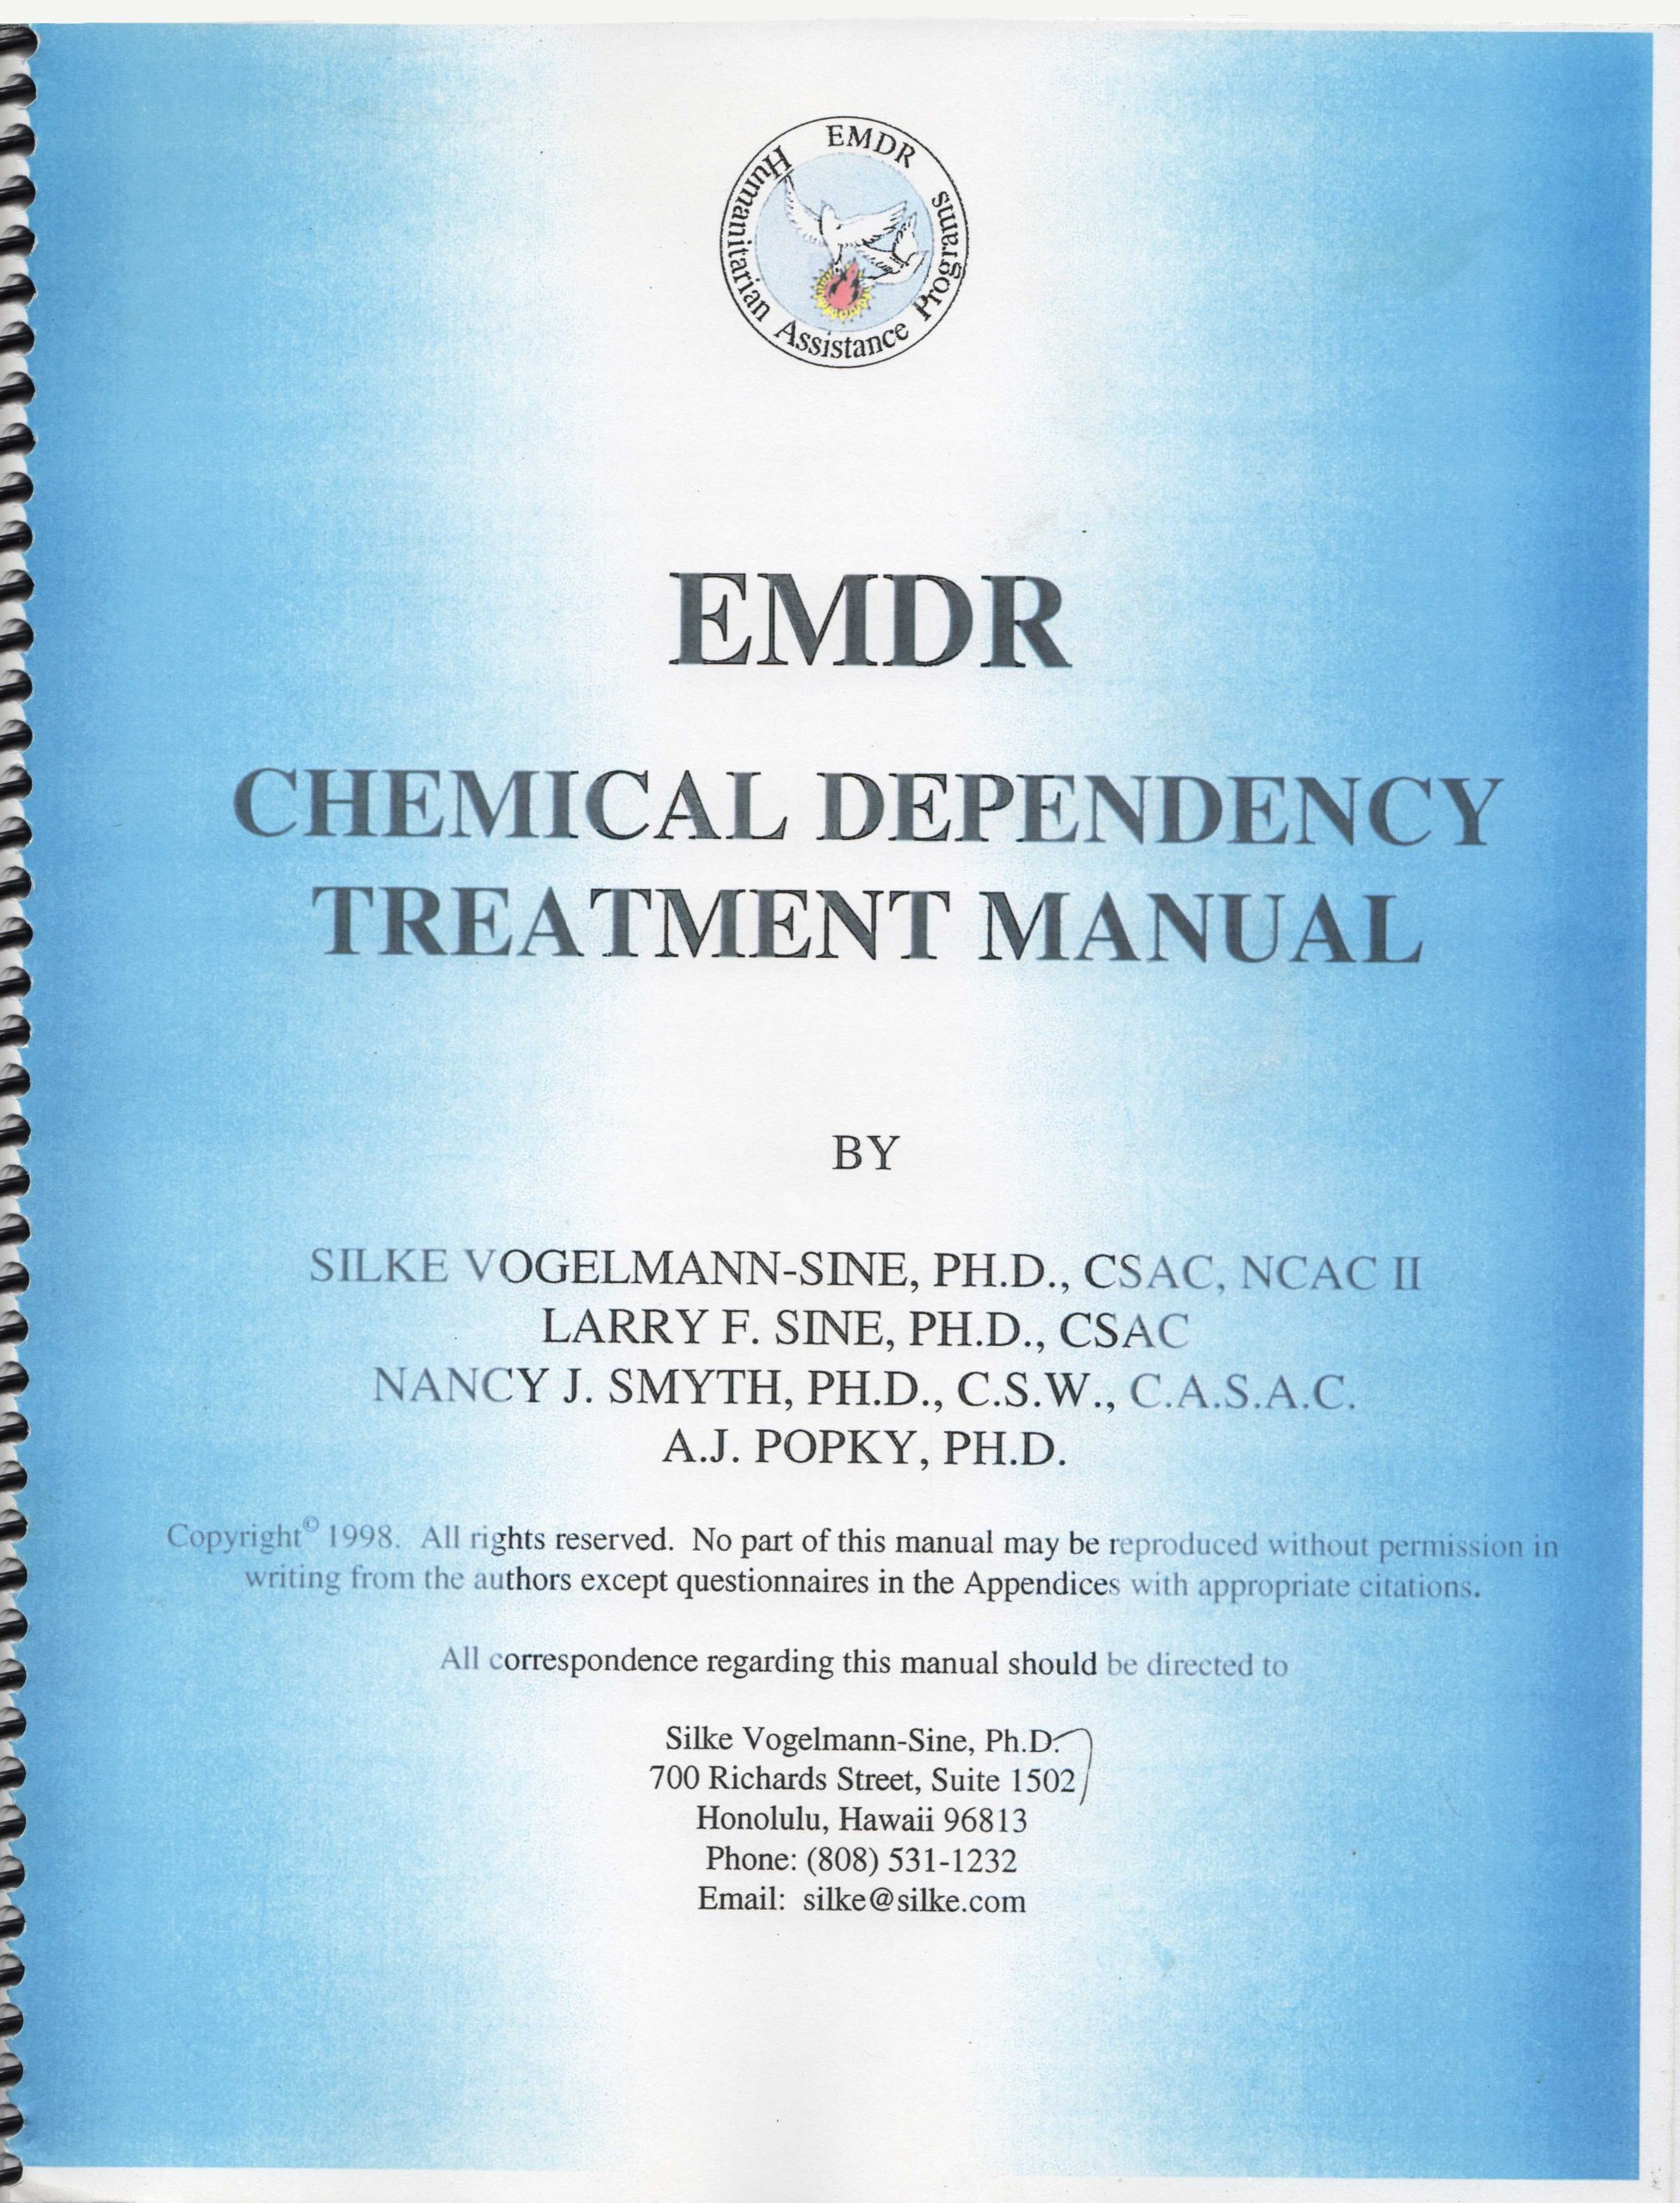 Emdr Chemical Dependency Treatment Manual Silke Vogelmann Sine